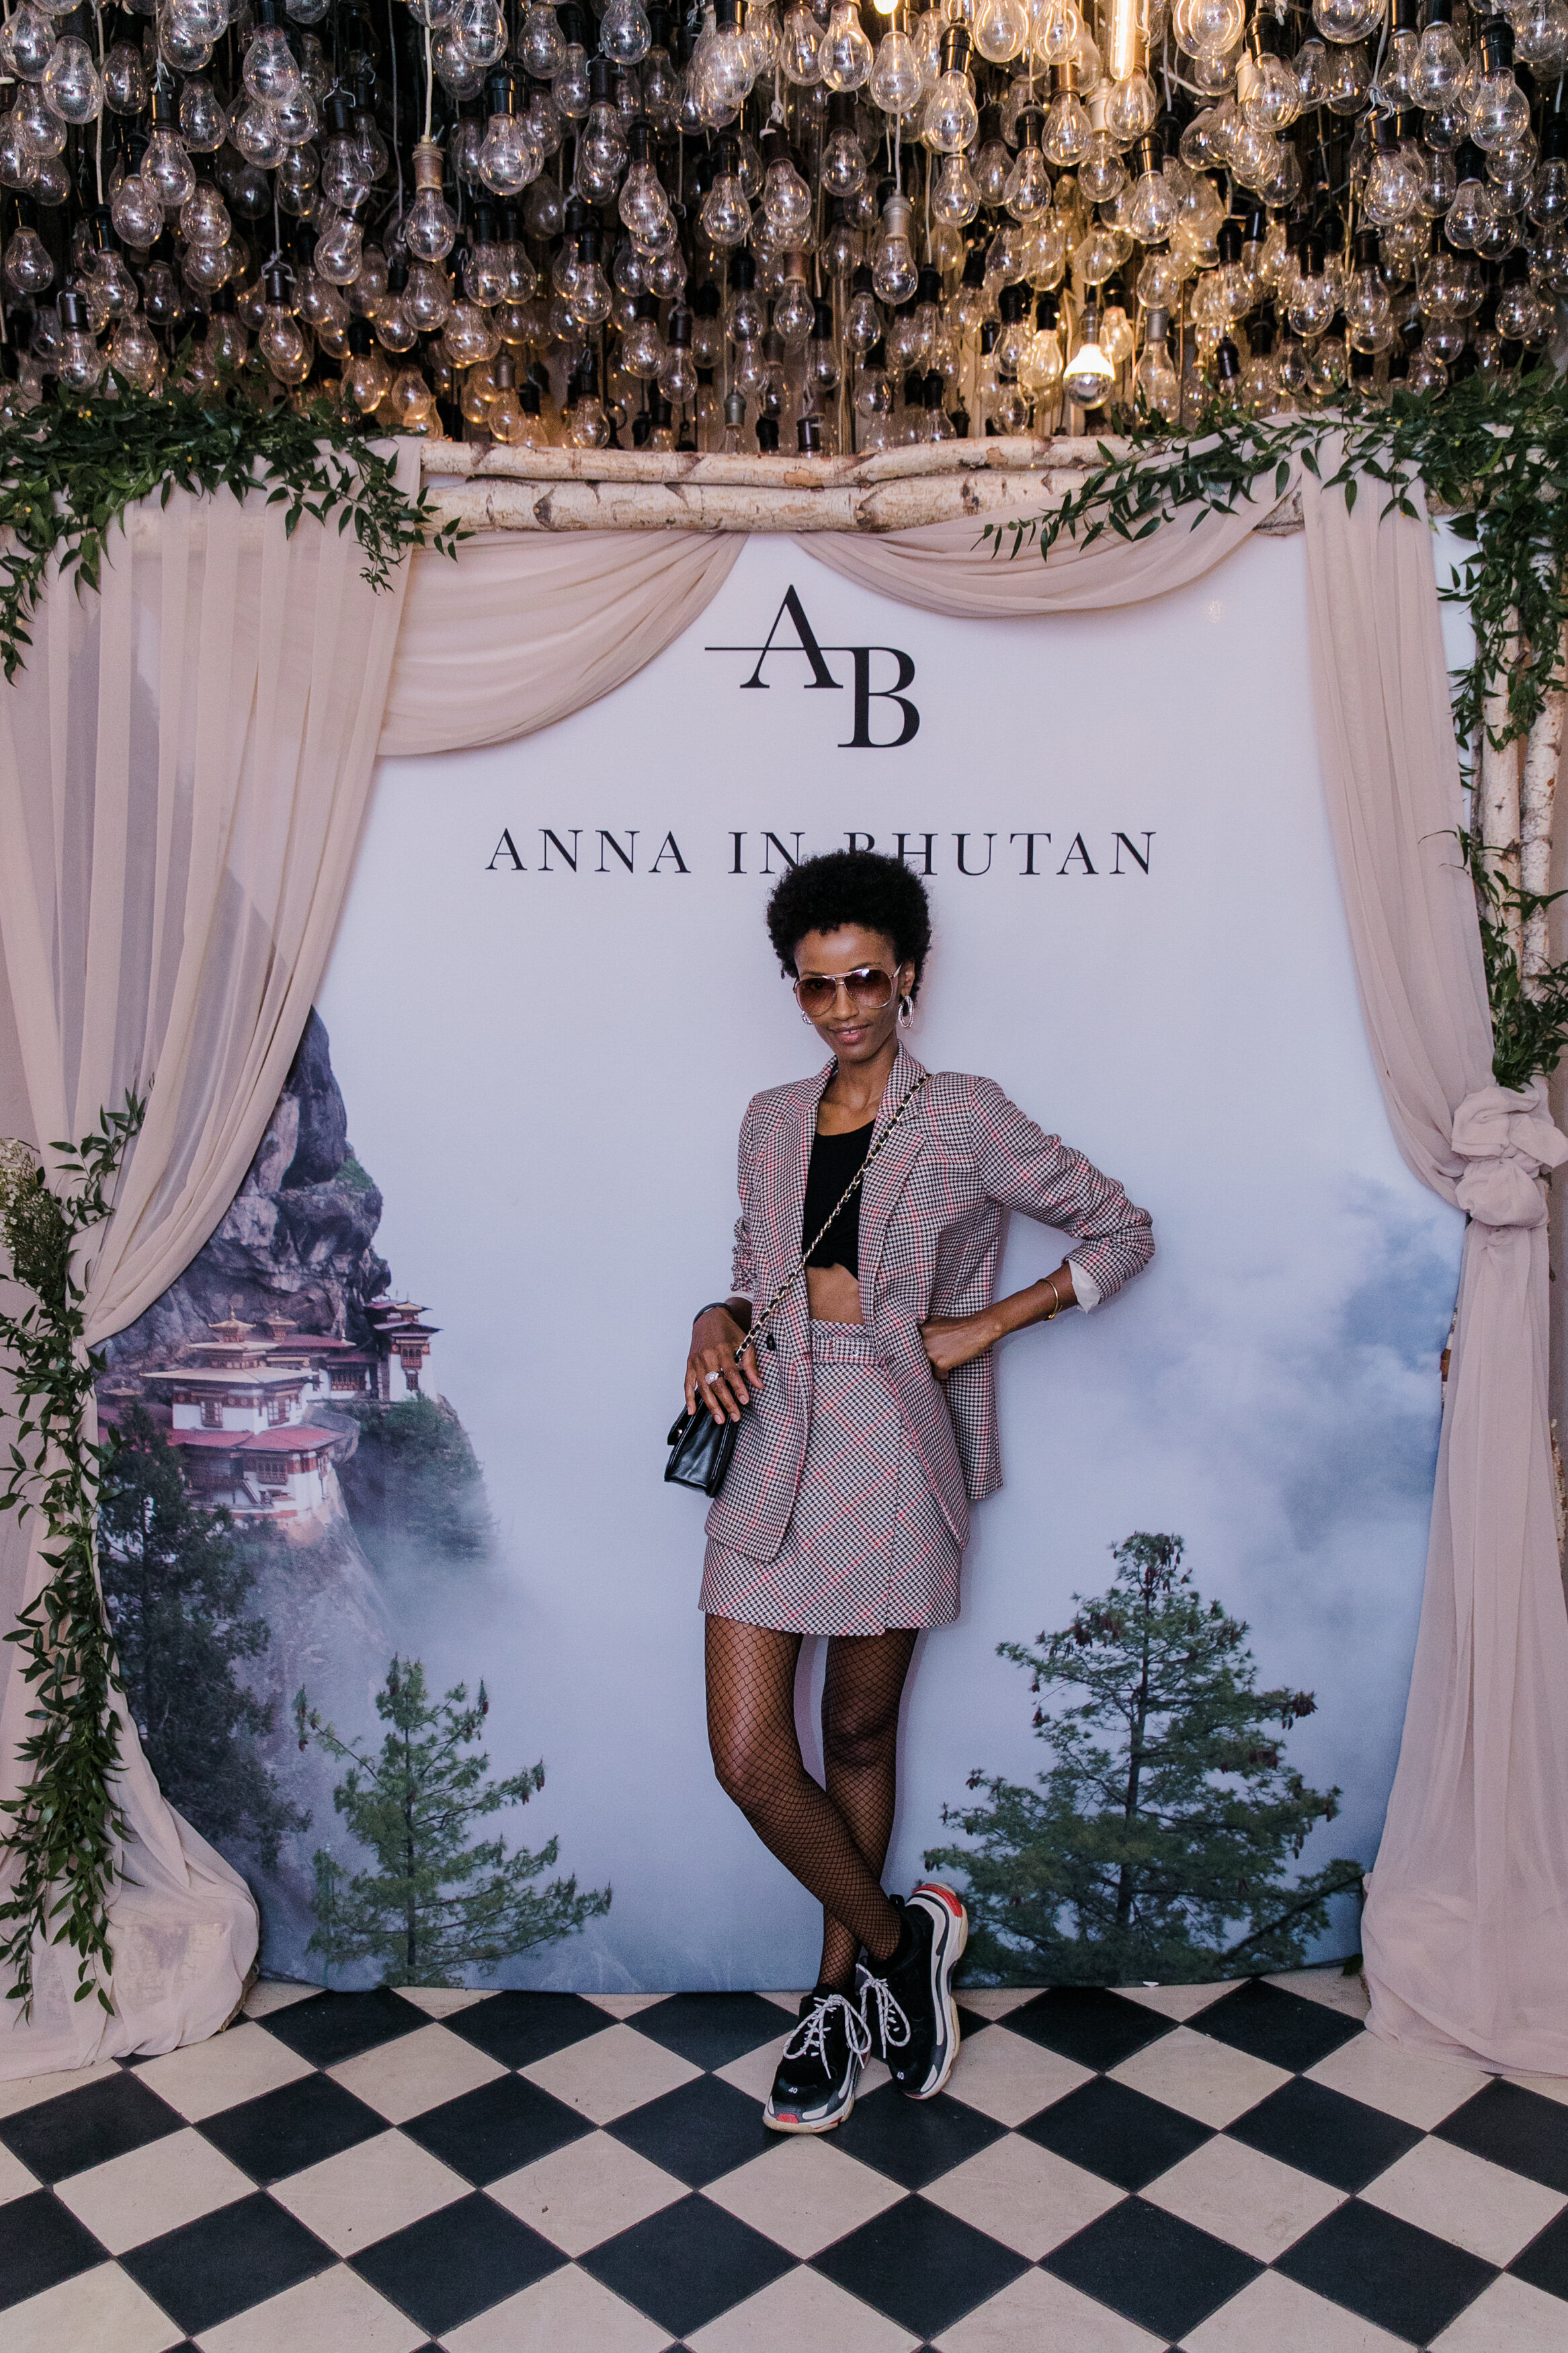 New-York-Fashion-Week-Launch-Party-Andrea-Freeman-Events-011.jpg